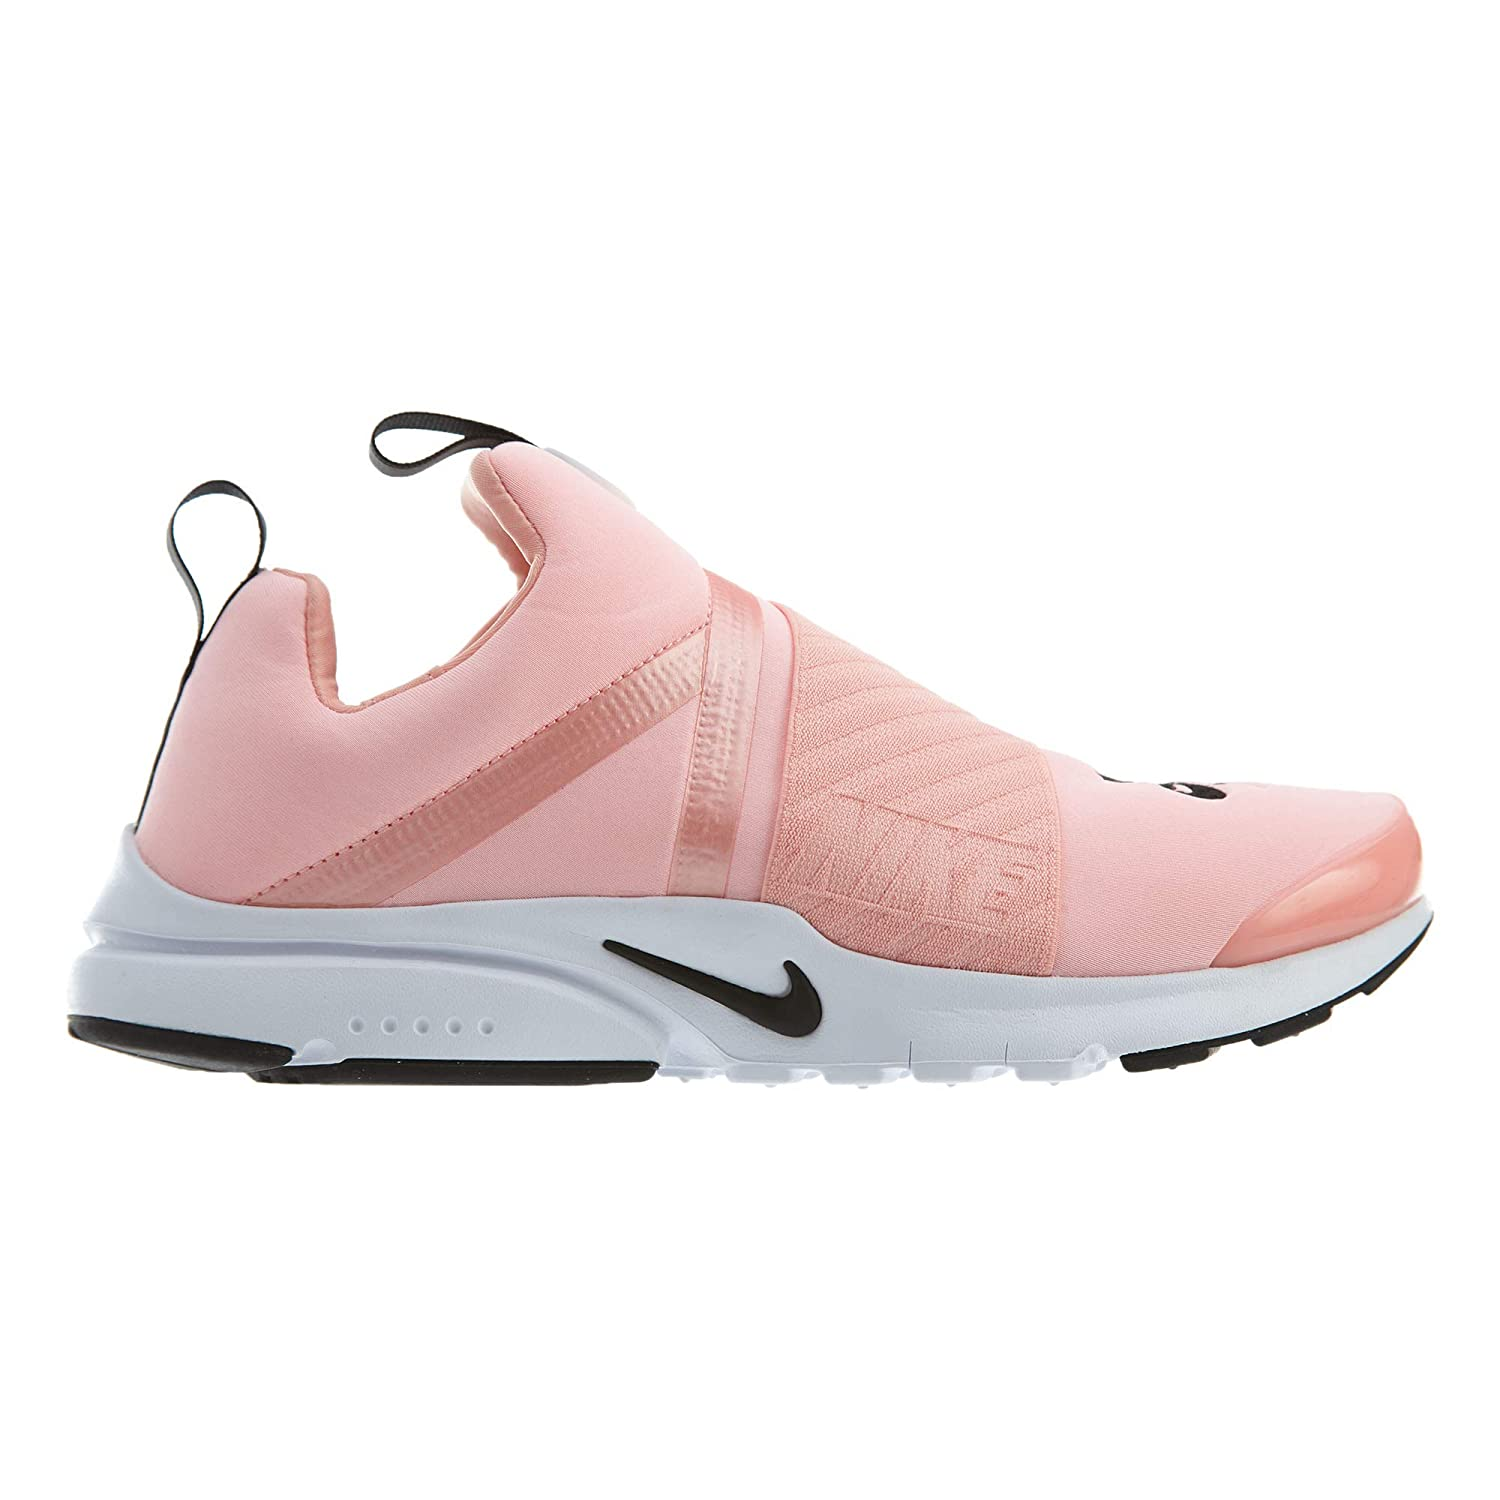 33c0930f53b75 Amazon.com | Nike Girls Presto Extreme Vday Running Shoe (7 Y) | Shoes